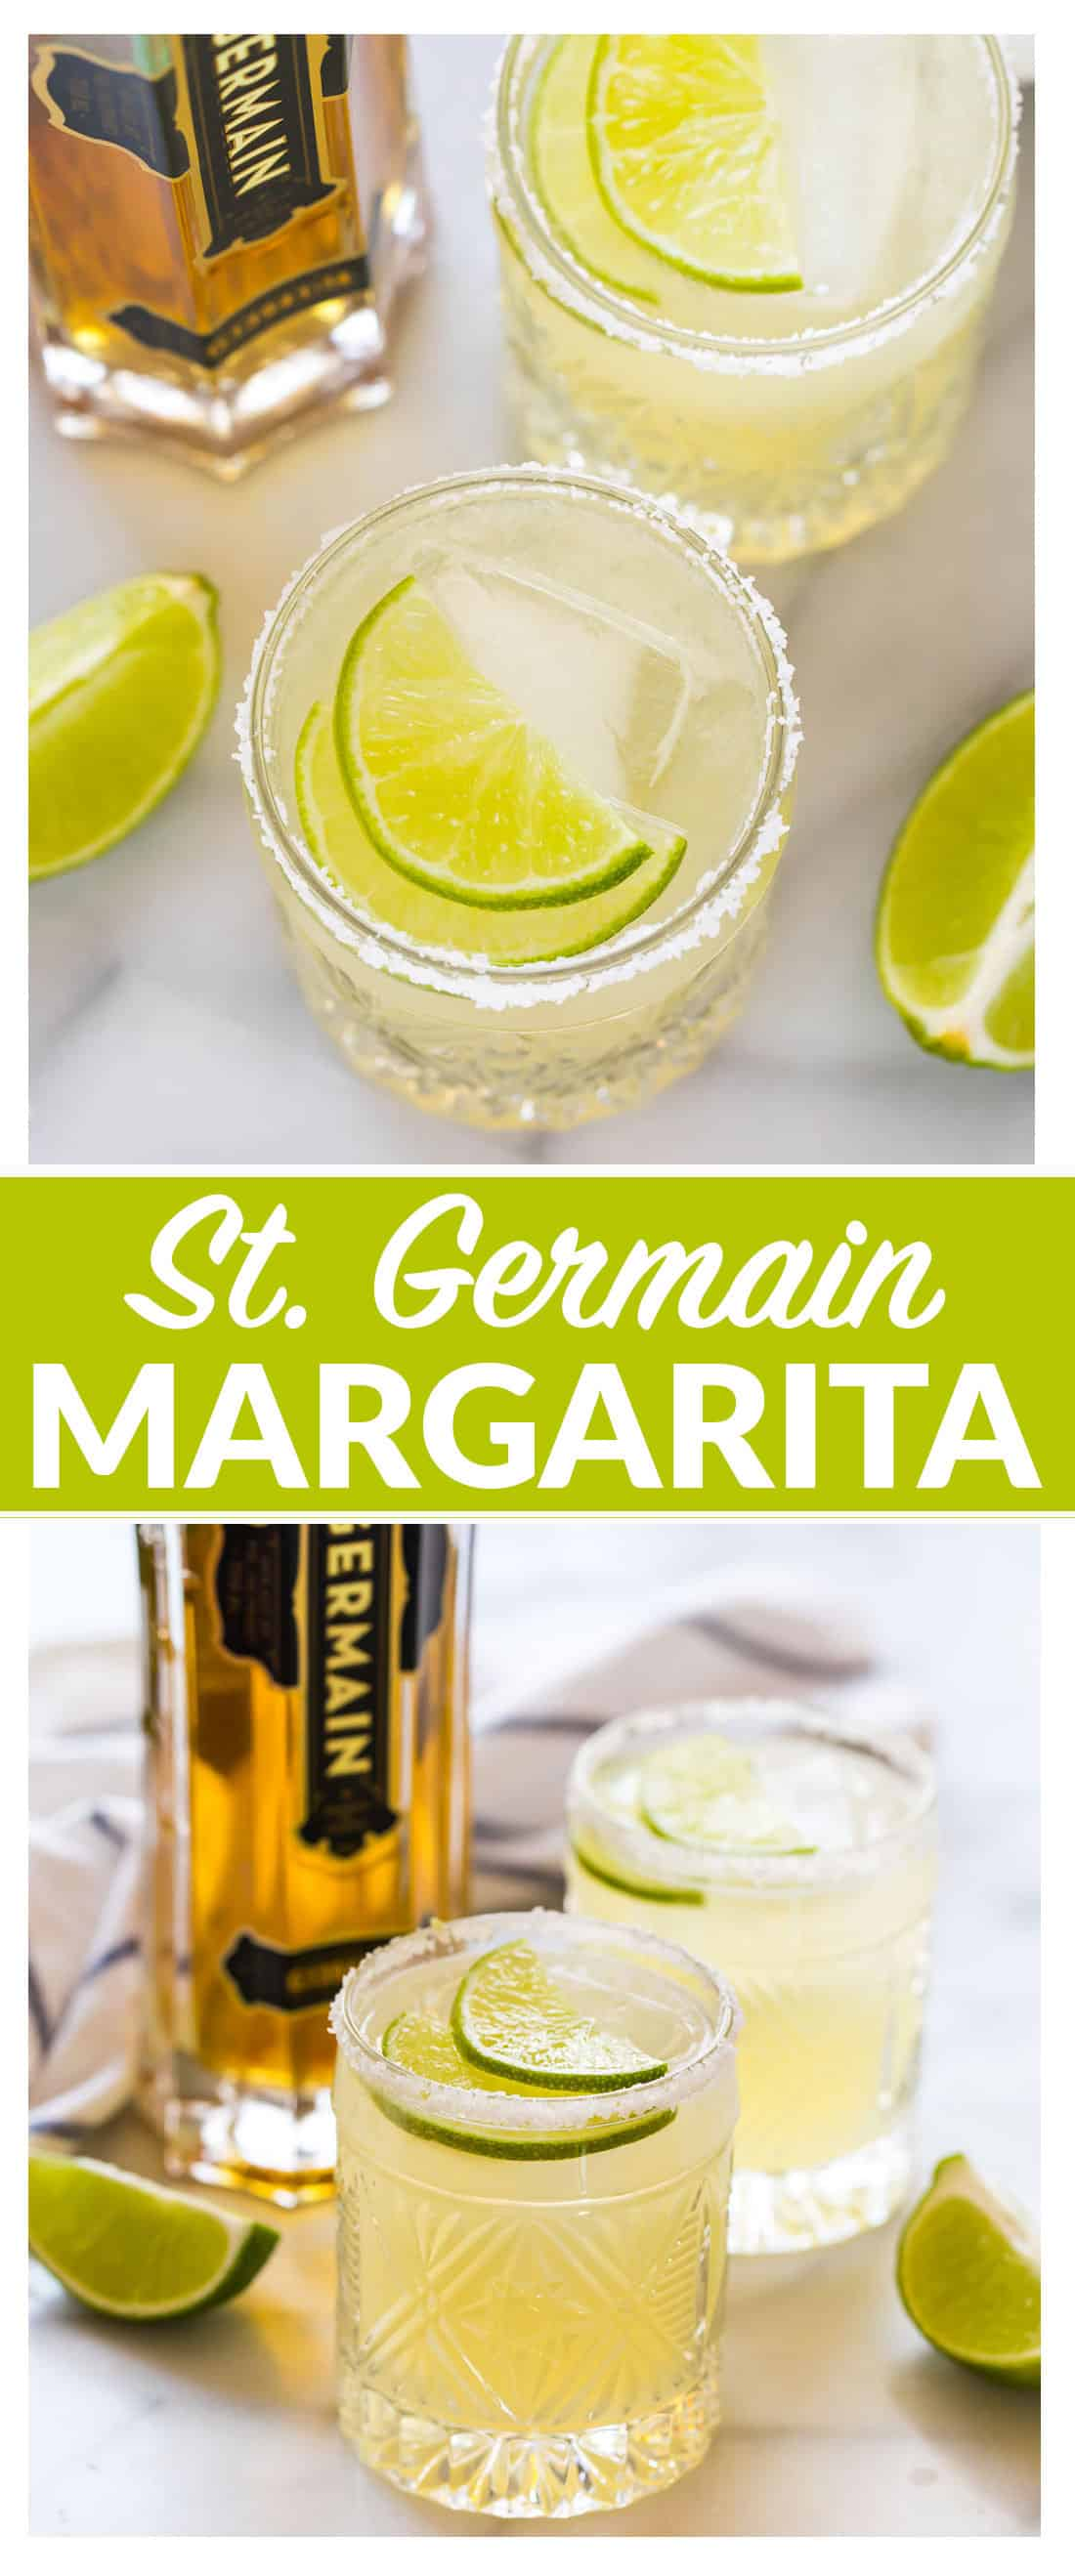 St. Germain Margarita. Fresh limes, tequila, St. Germain combine to create a bright, floral and refreshing elderflower margarita. No simple syrup required! This easy and delicious St. Germain cocktail will be a fast favorite! #stgermaincocktails